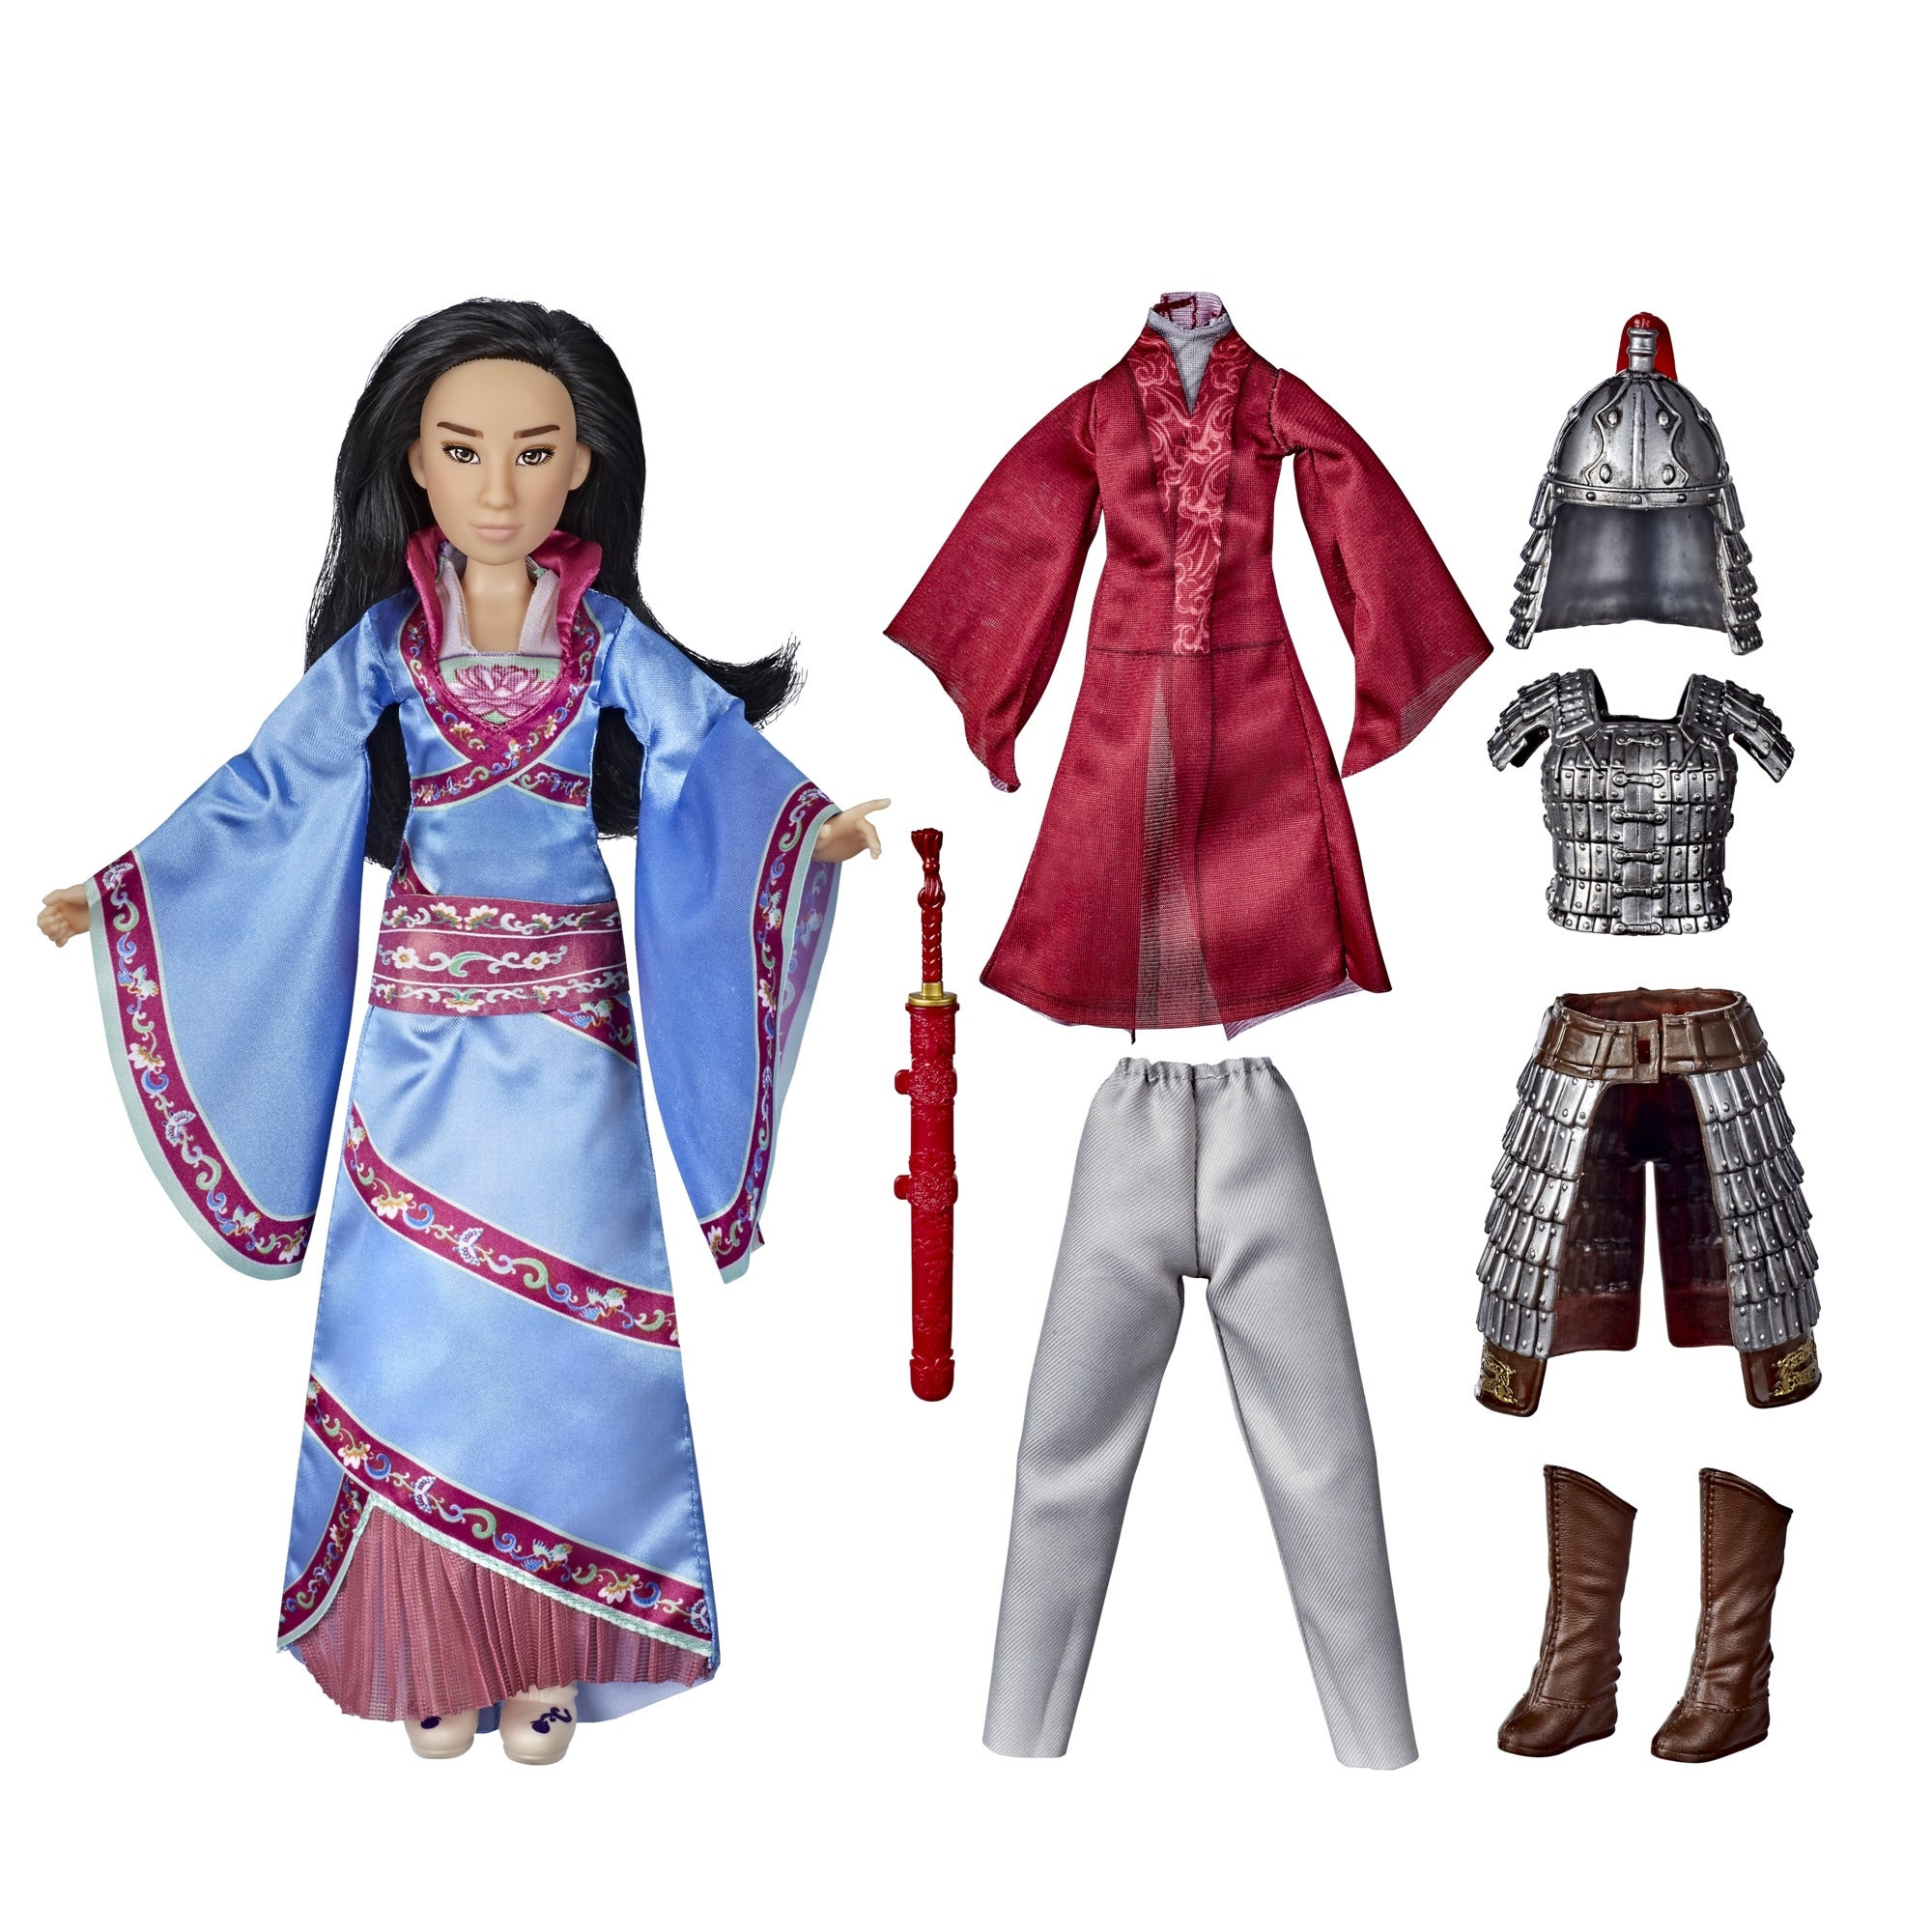 Shop Disney Mulan Two Reflections Set Doll With 2 Outfits And Accessories Inspired By Disney S Mulan Movie Overstock 31669060